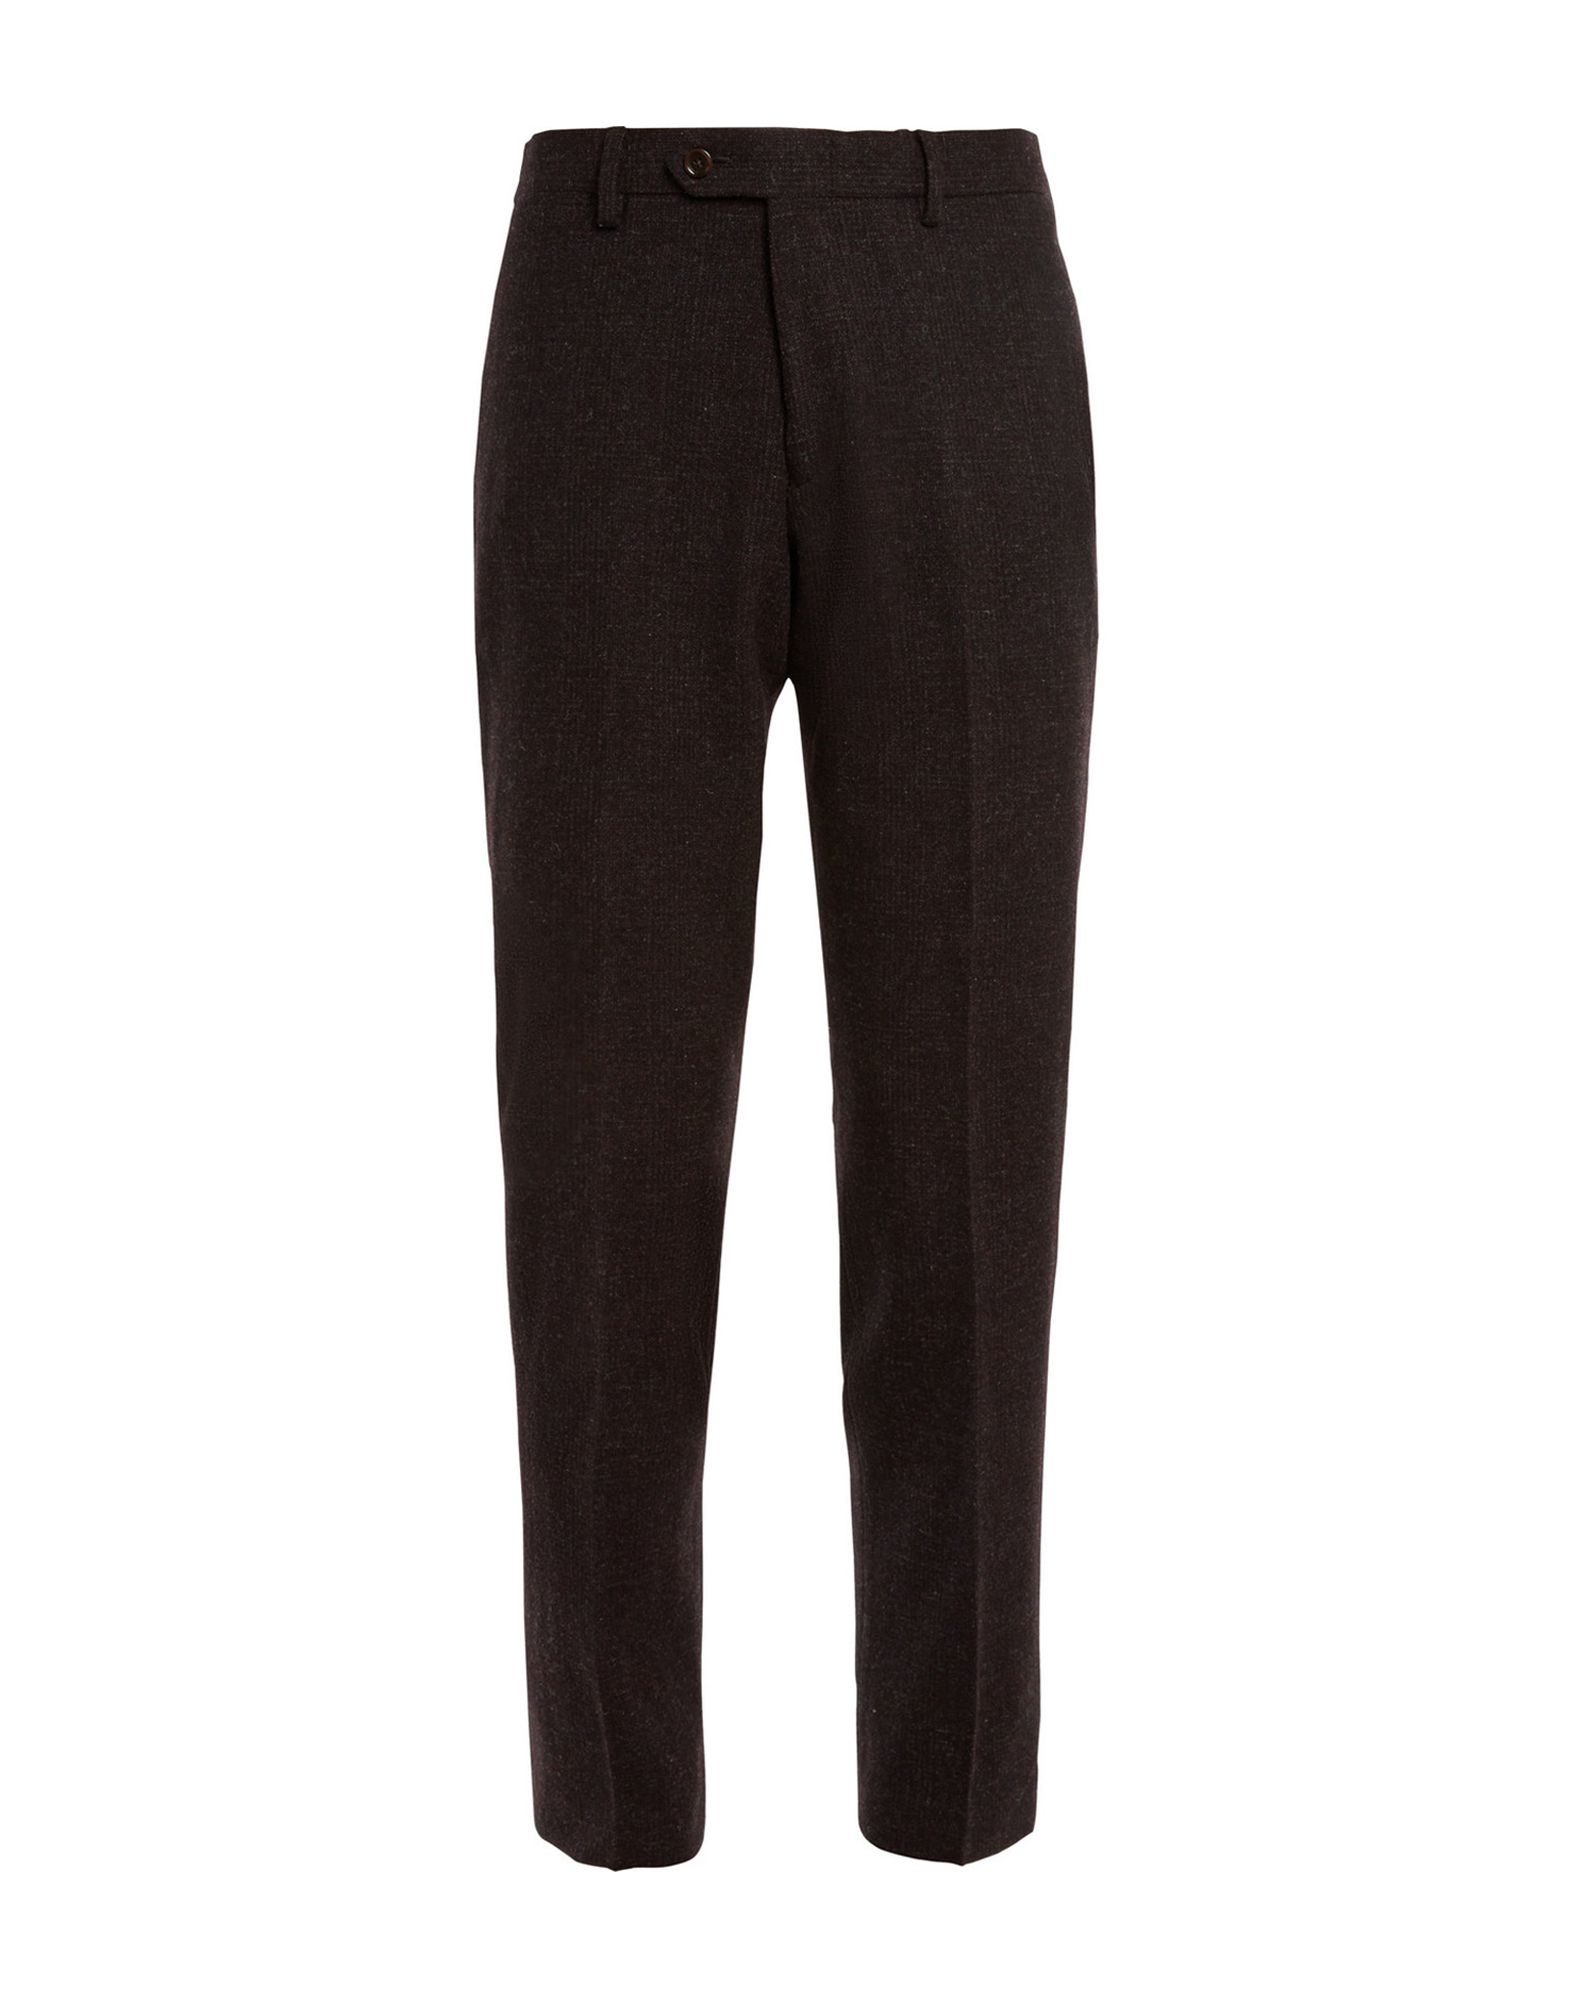 J.CREW Casual pants. flannel, no appliqués, prince of wales design, mid rise, regular fit, tapered leg, button, zip, multipockets, tailored. 100% Wool